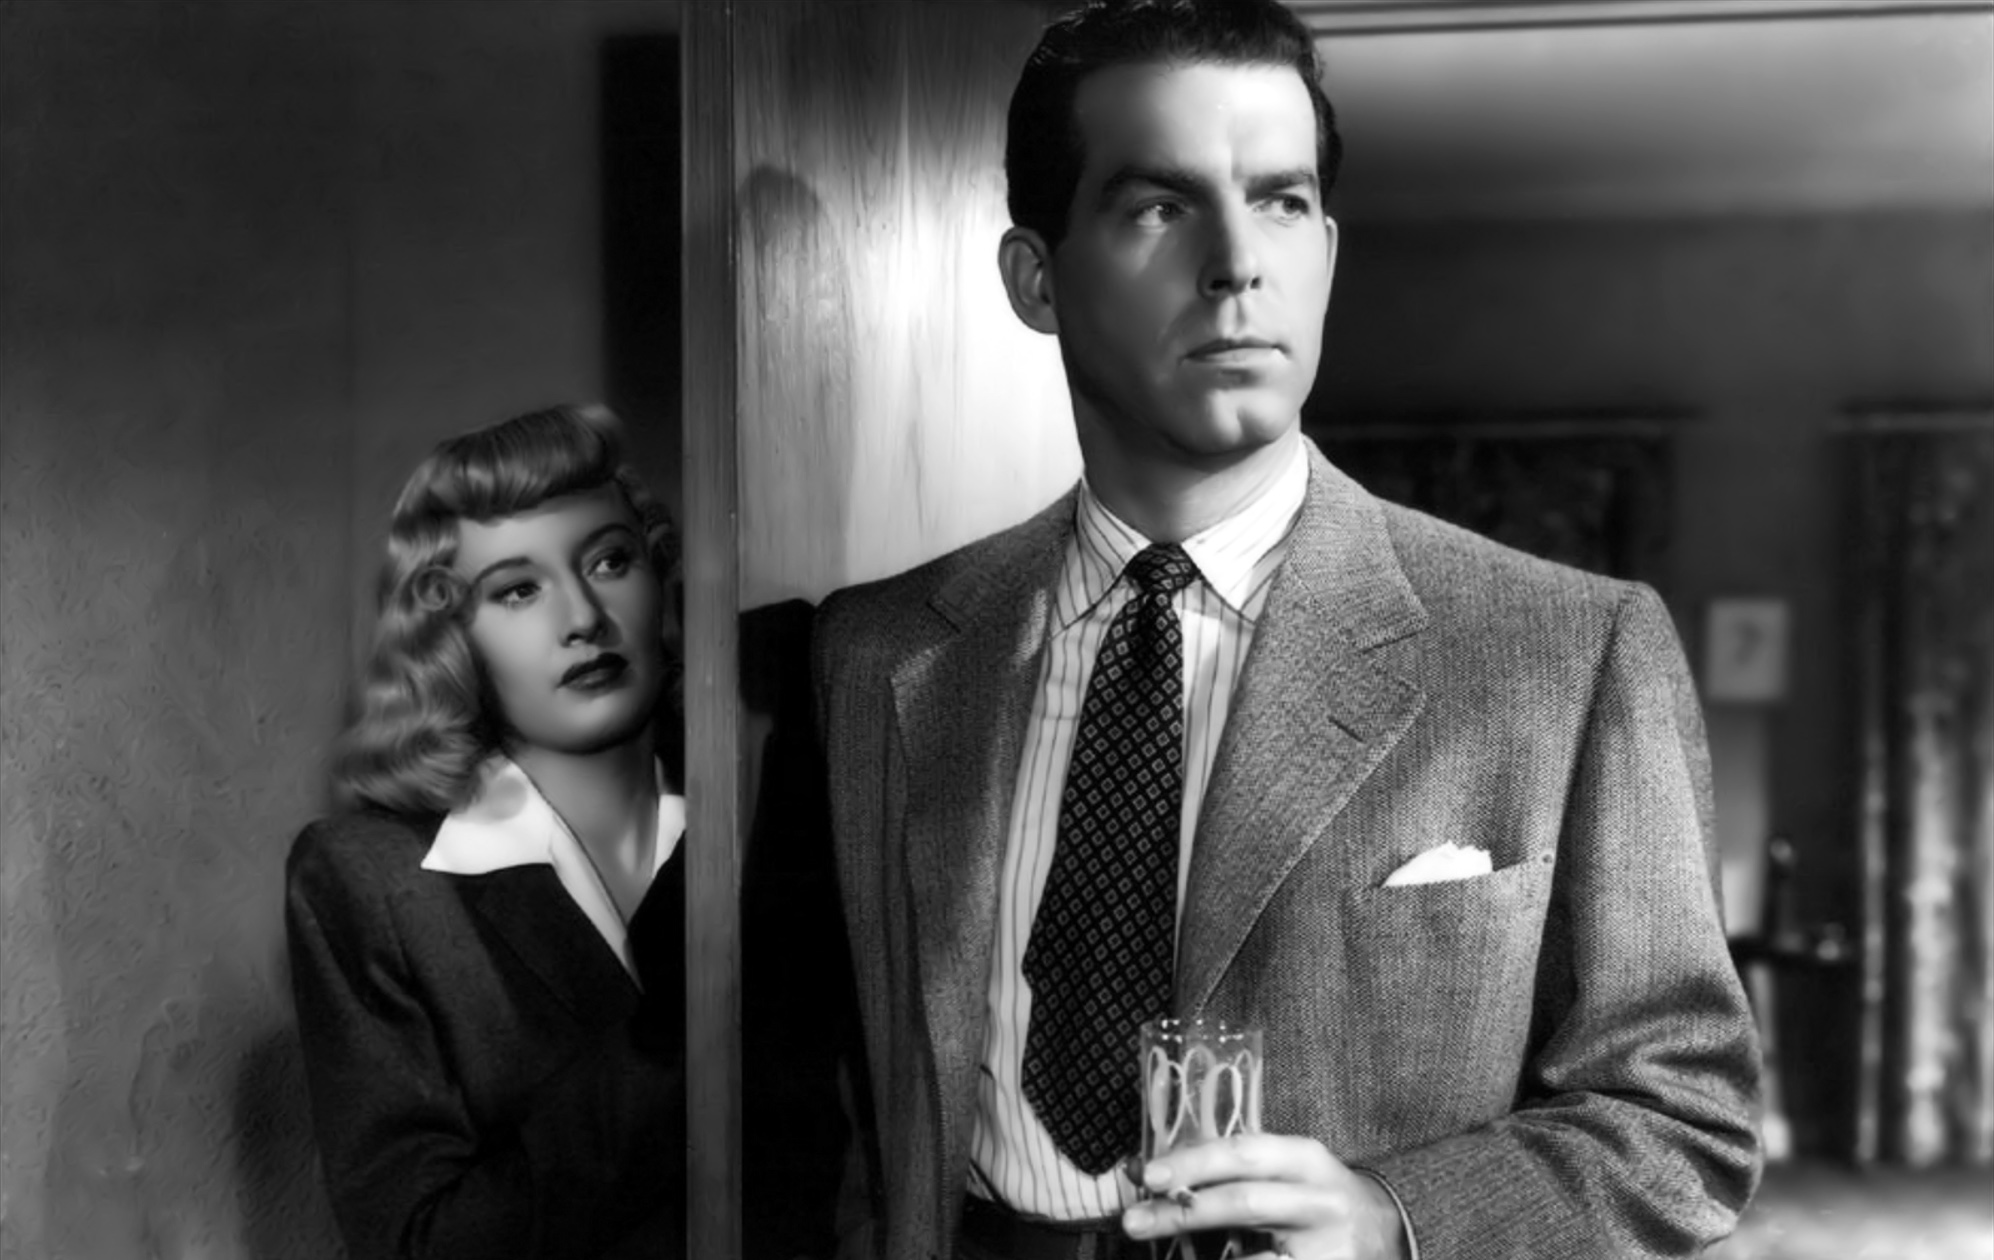 Barbara Stanwyck as Mrs. Phyllis Dietrichson and Fred MacMurray as Walter Neff in  Double Indemnity